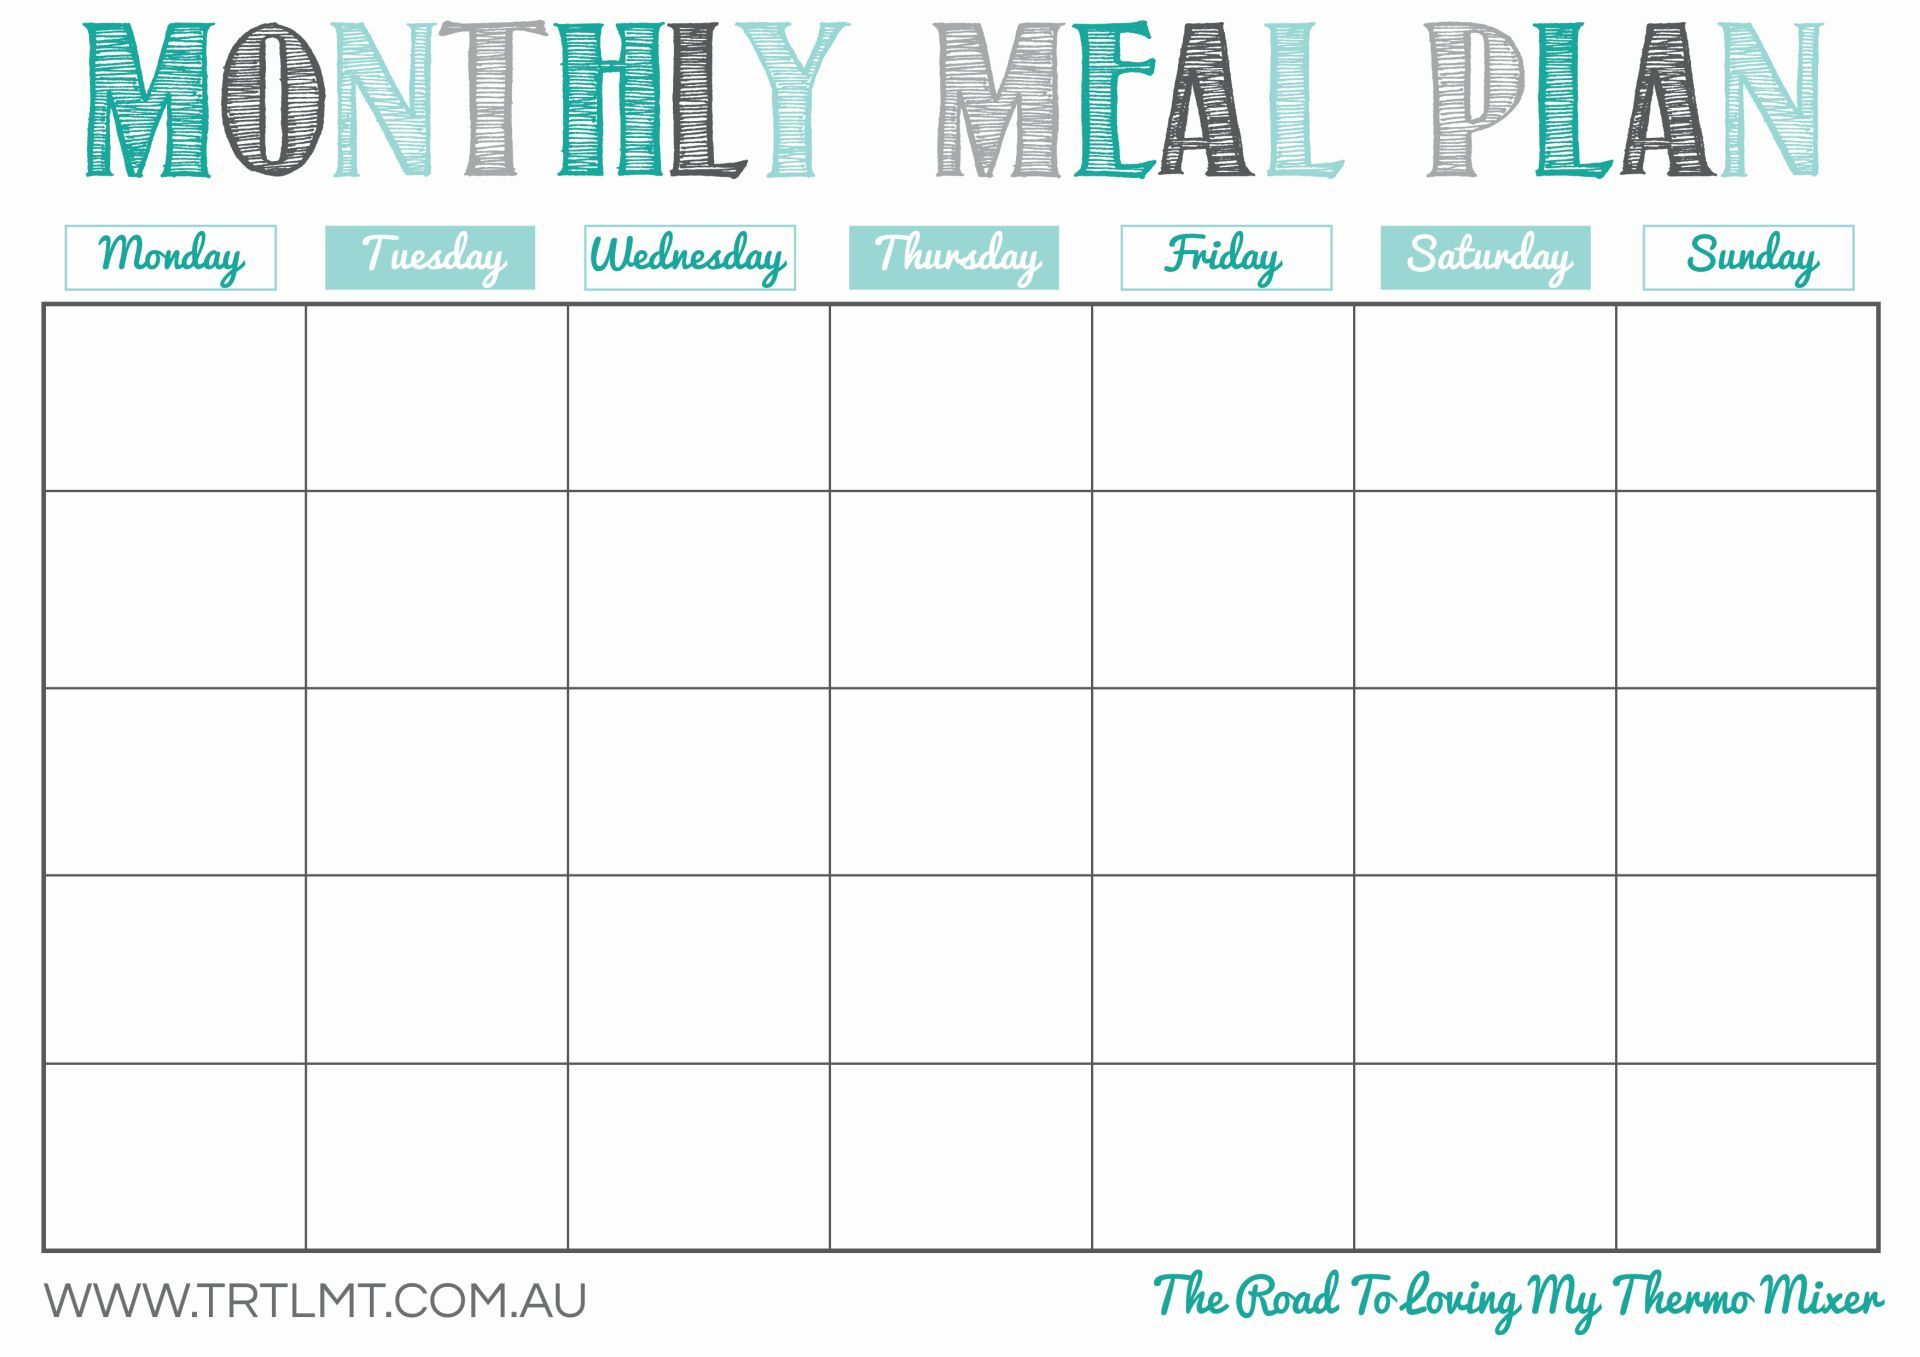 Printable Meal Plan Template Excel Intended For Meal Plan Template Excel For Personal Use